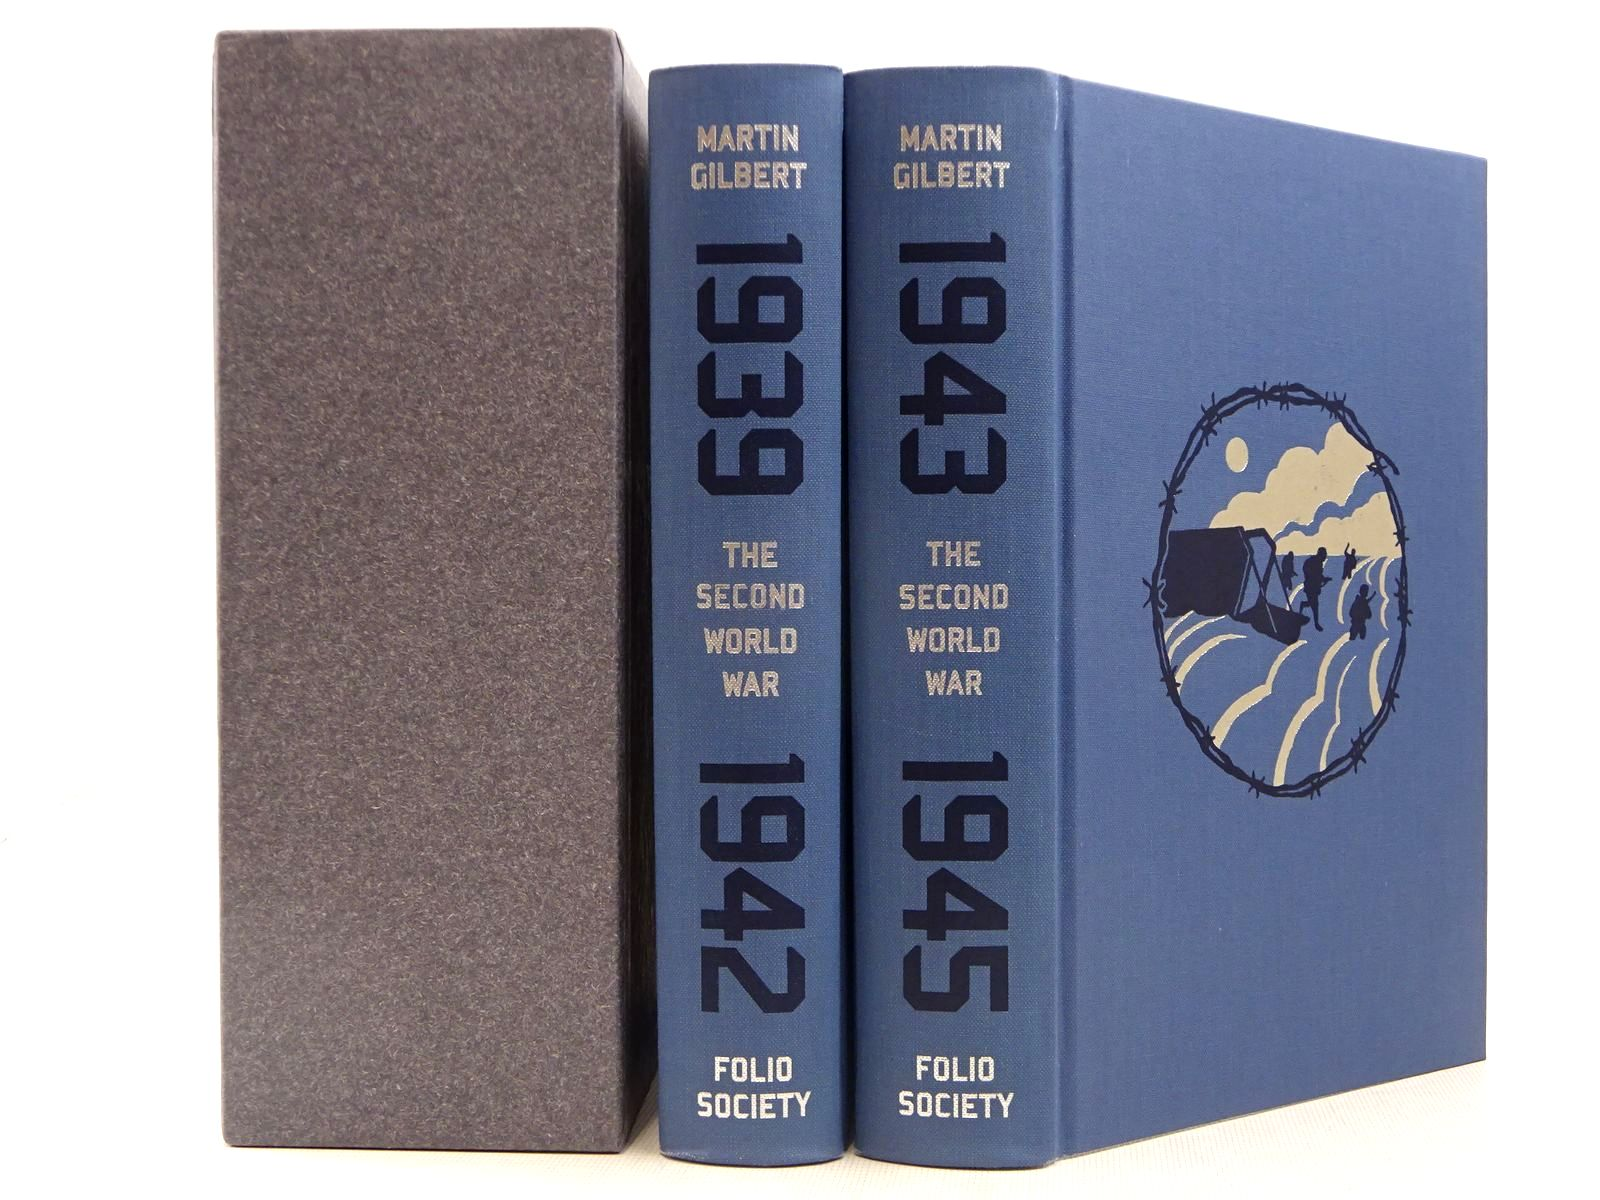 Photo of THE SECOND WORLD WAR (2 VOLUMES) written by Gilbert, Martin illustrated by McLaren, Joe published by Folio Society (STOCK CODE: 2129261)  for sale by Stella & Rose's Books